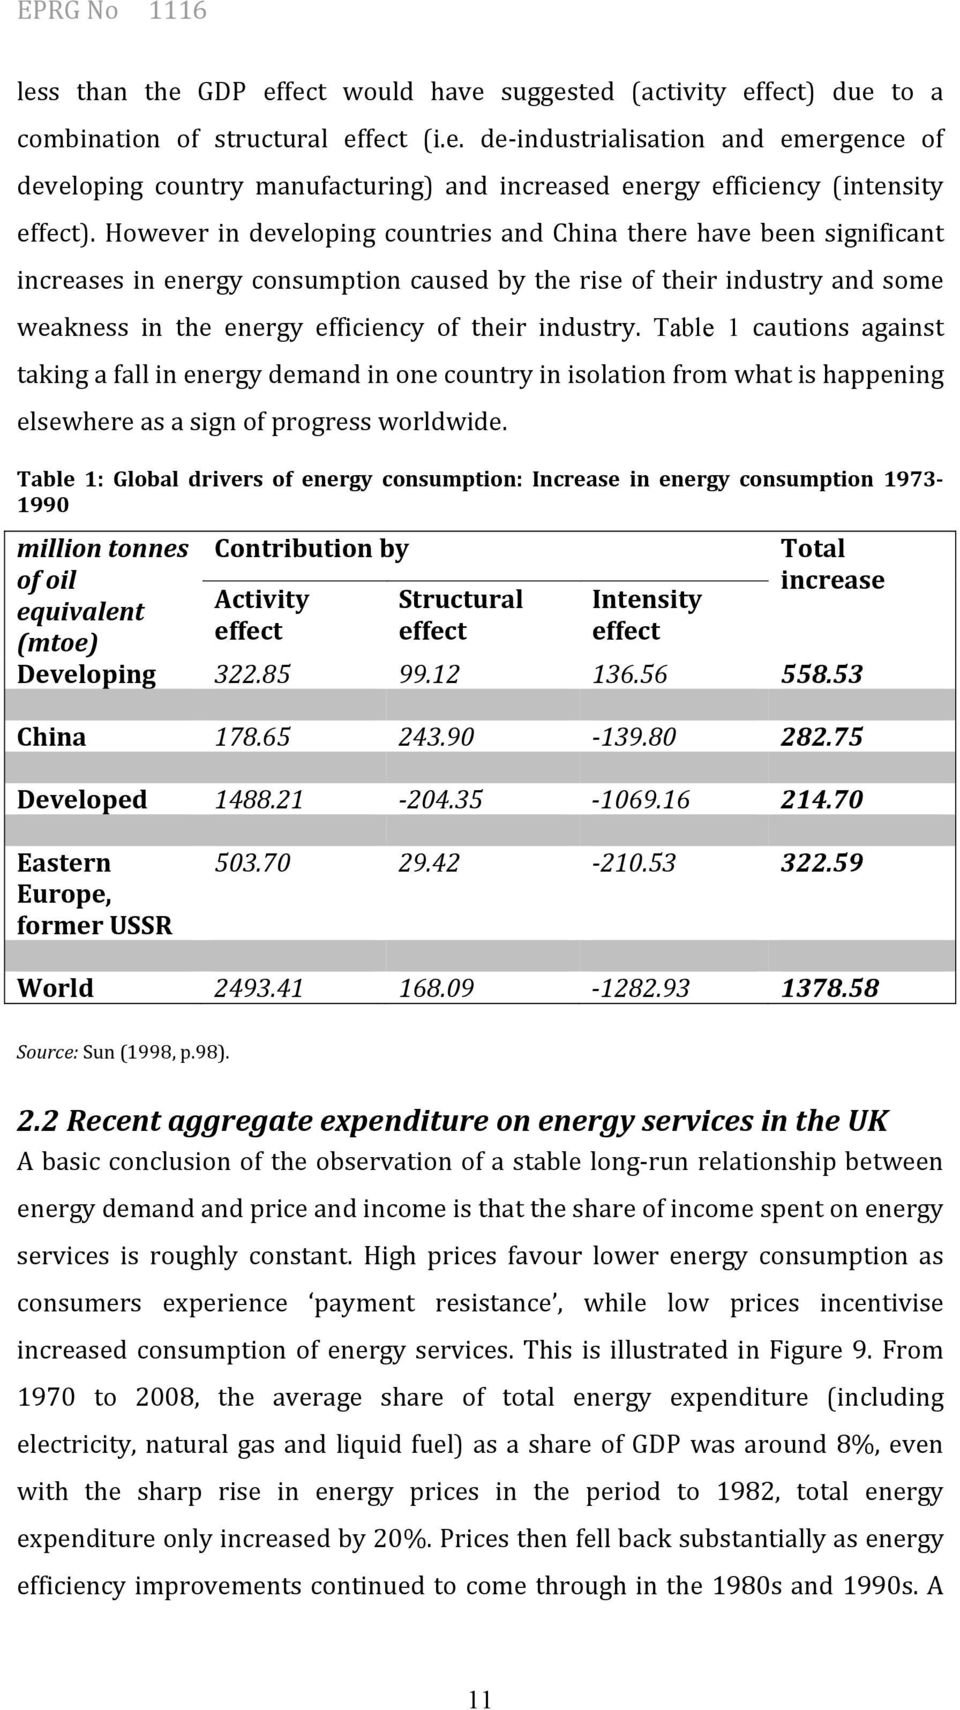 Table 1 cautions against taking a fall in energy demand in one country in isolation from what is happening elsewhere as a sign of progress worldwide.